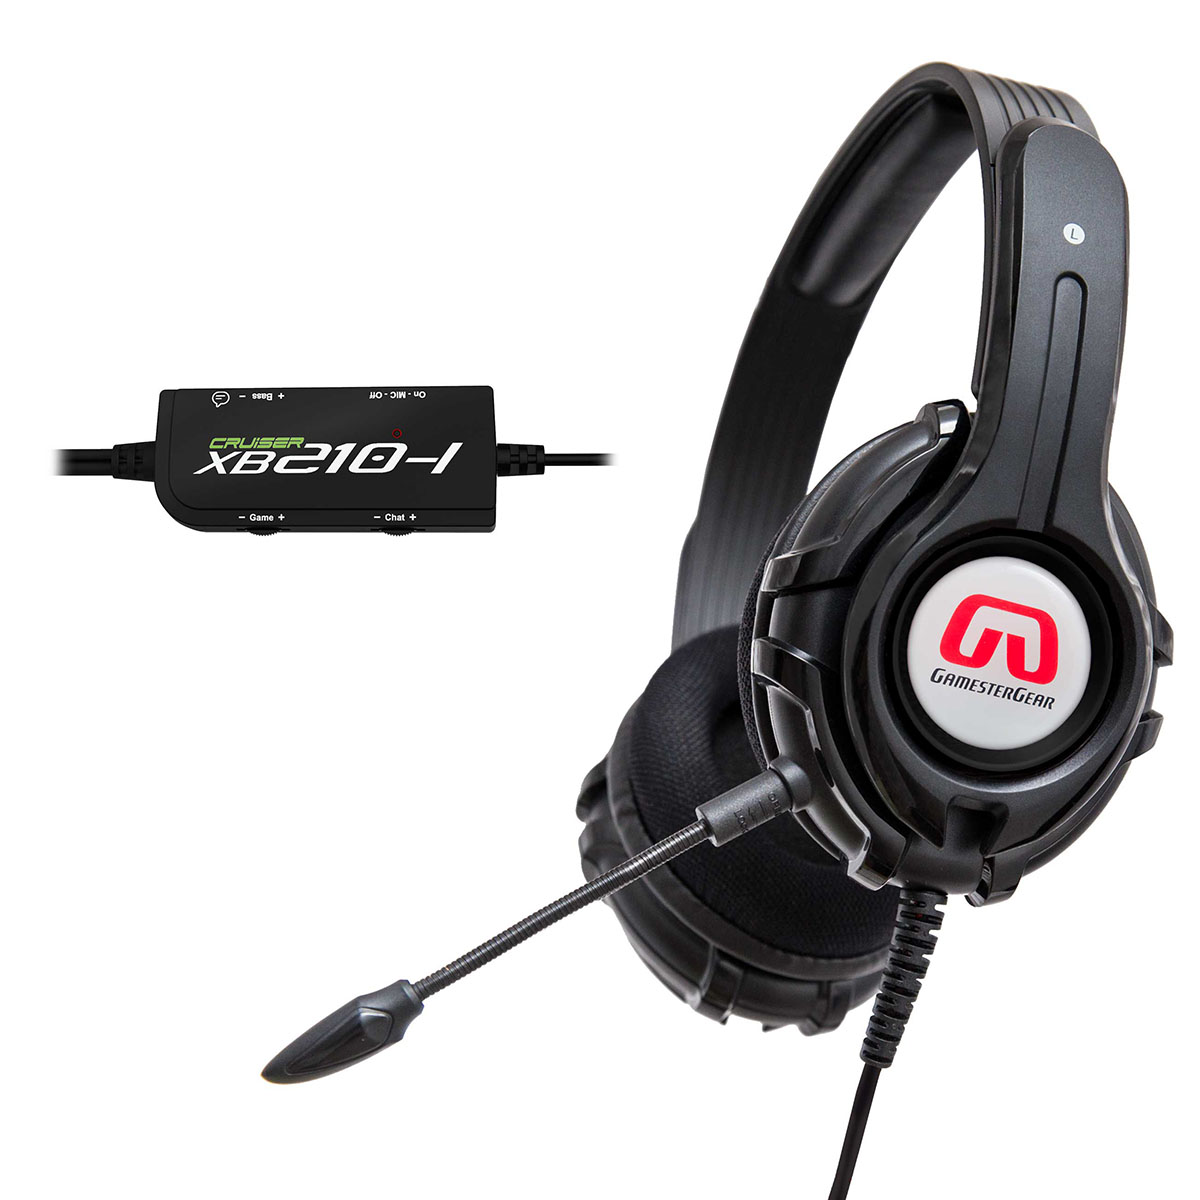 GAMESTERGEAR OG-AUD63083 XB210  HEADSET FOR XBOX360